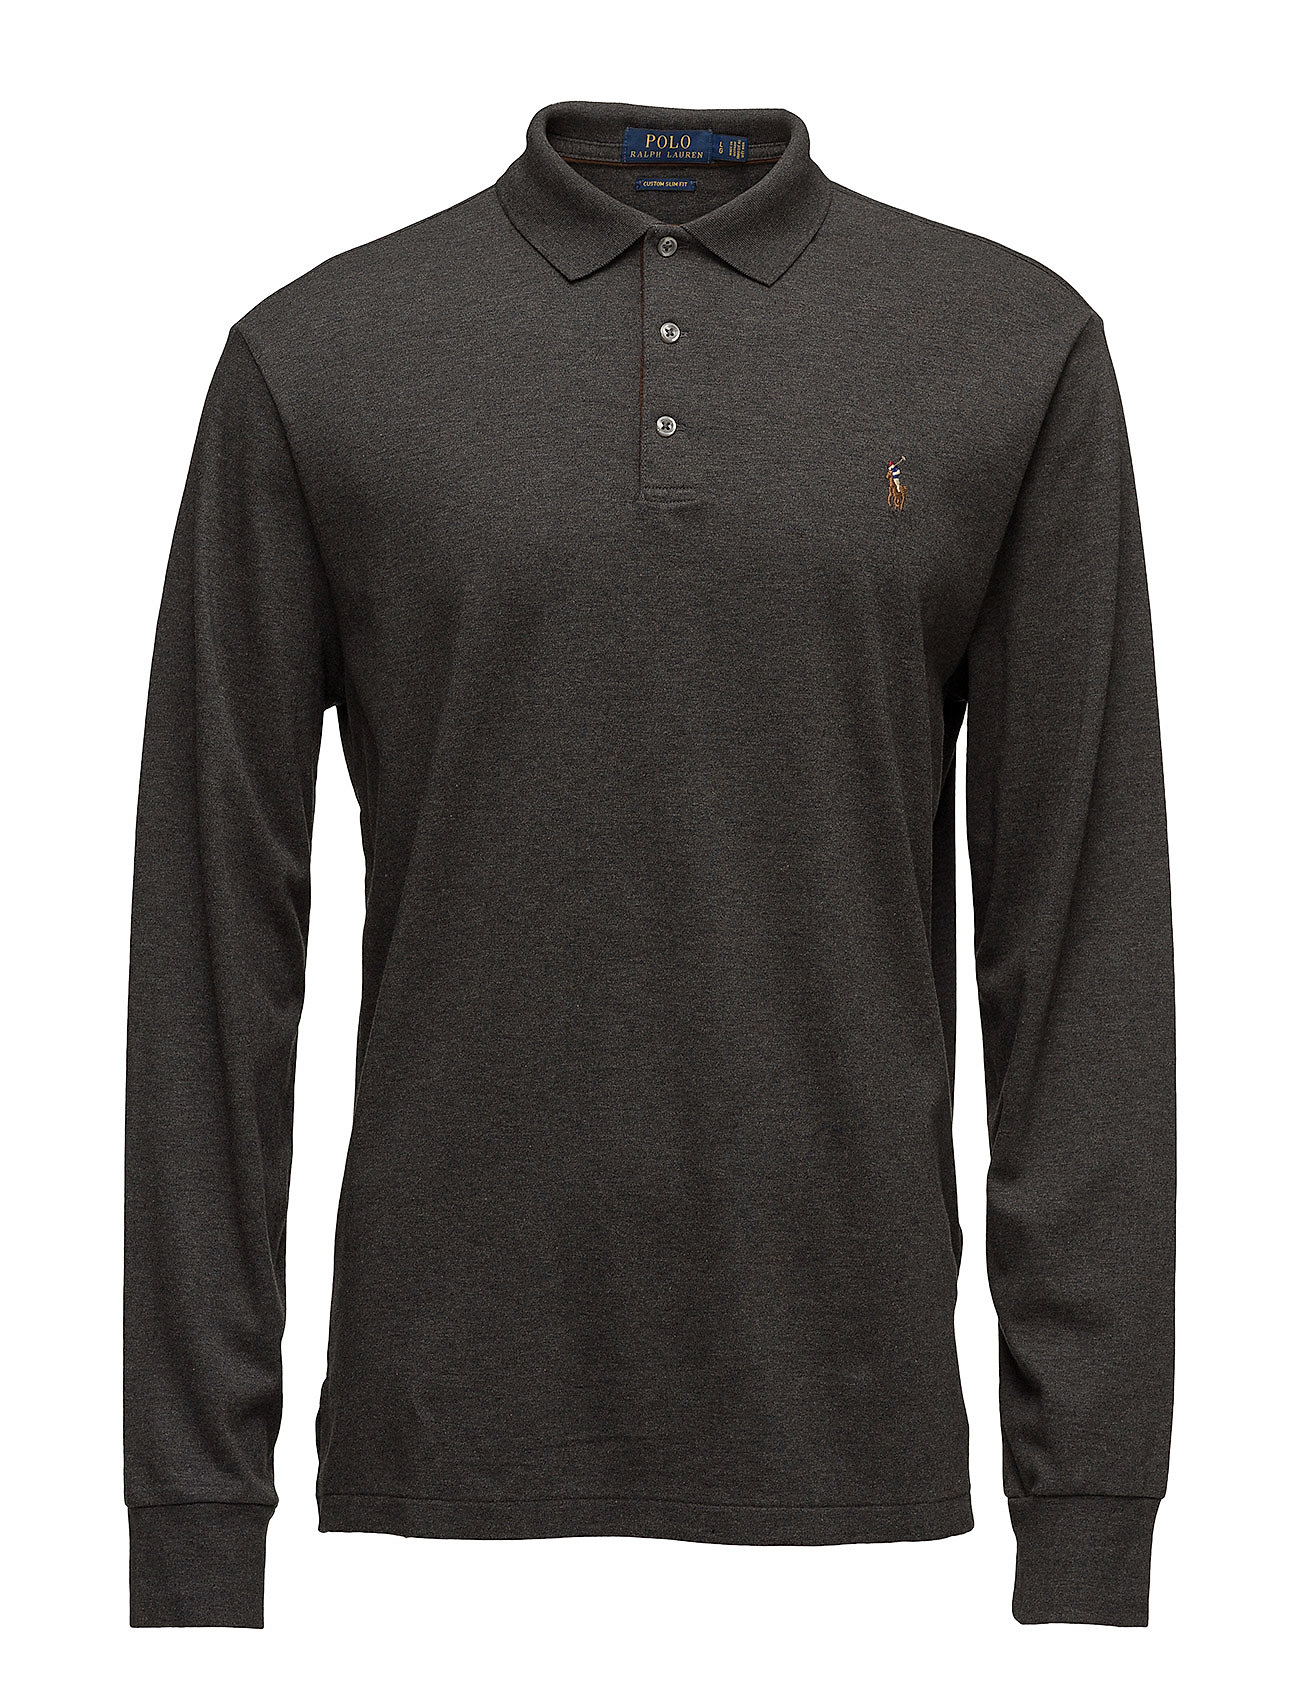 polo ralph lauren long sleeve polo shirt in slim fit